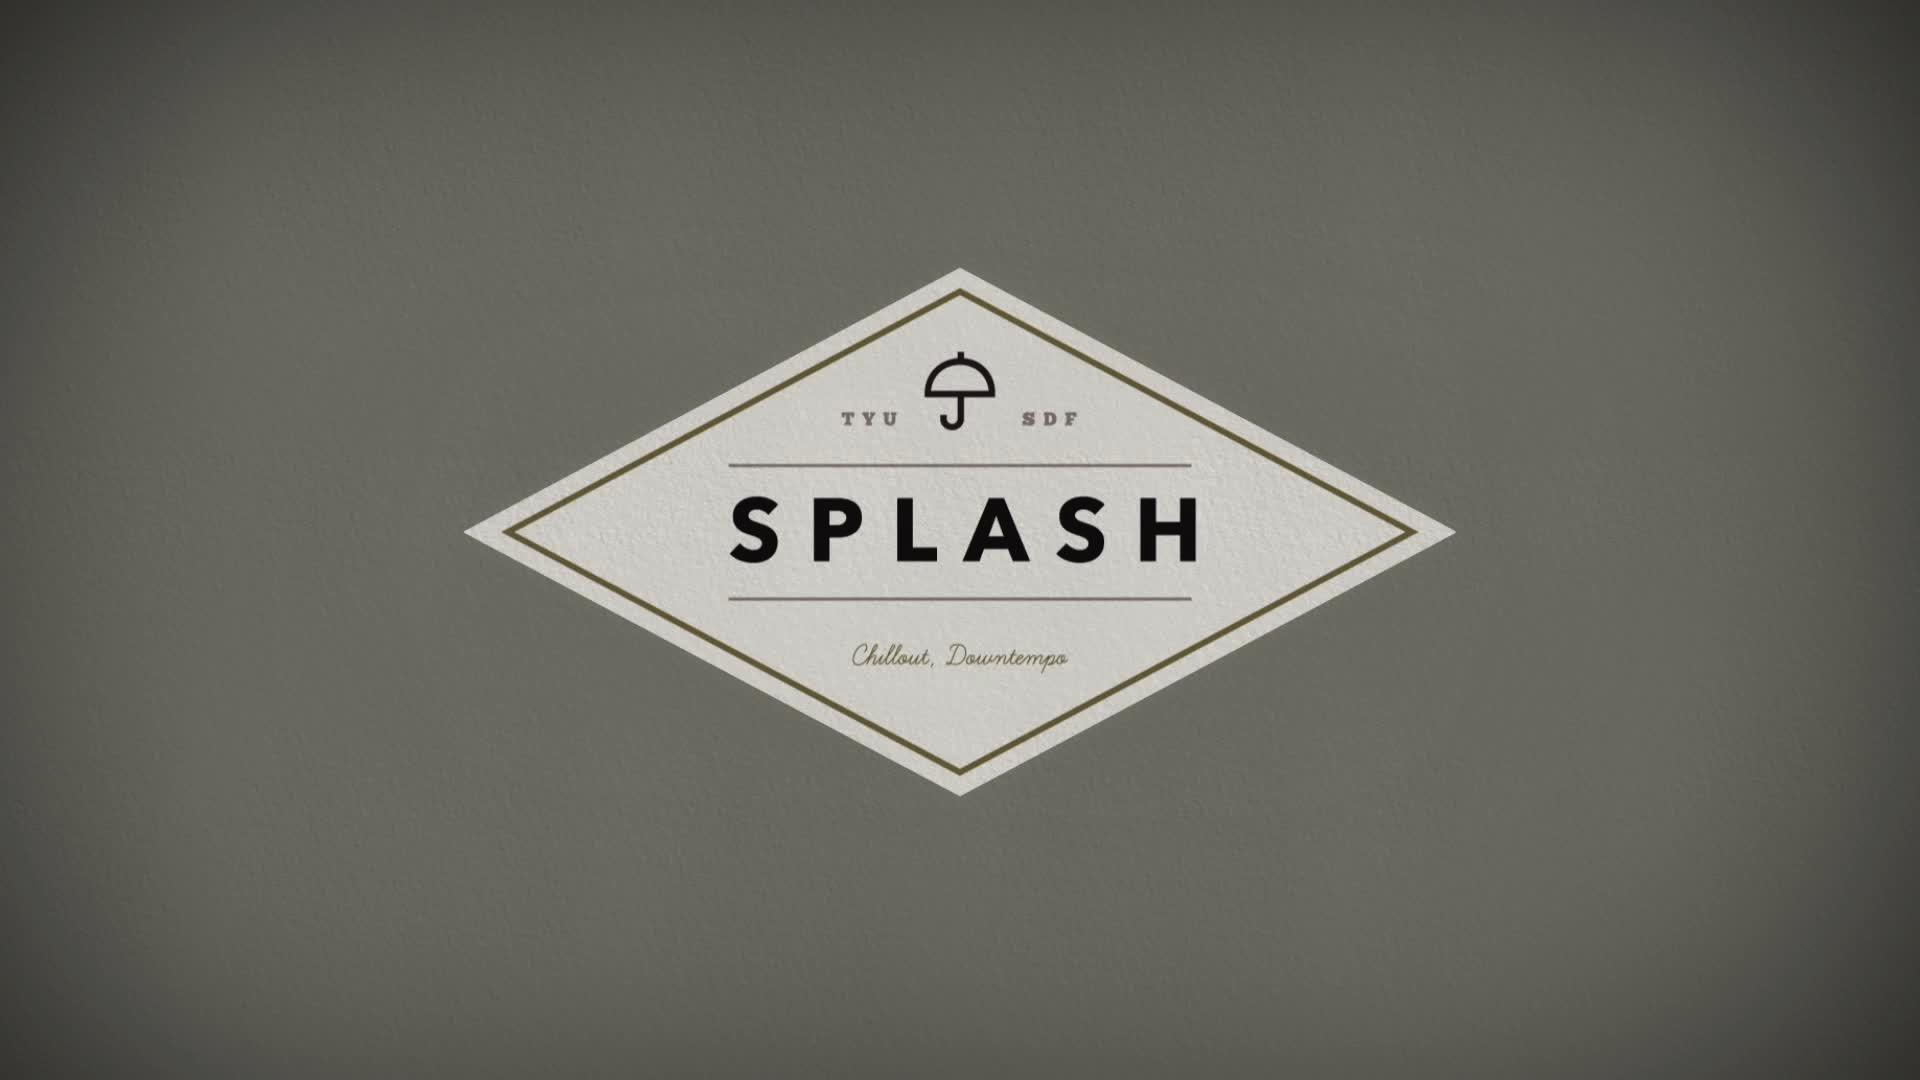 splash organic logo reveal after effects template. Black Bedroom Furniture Sets. Home Design Ideas